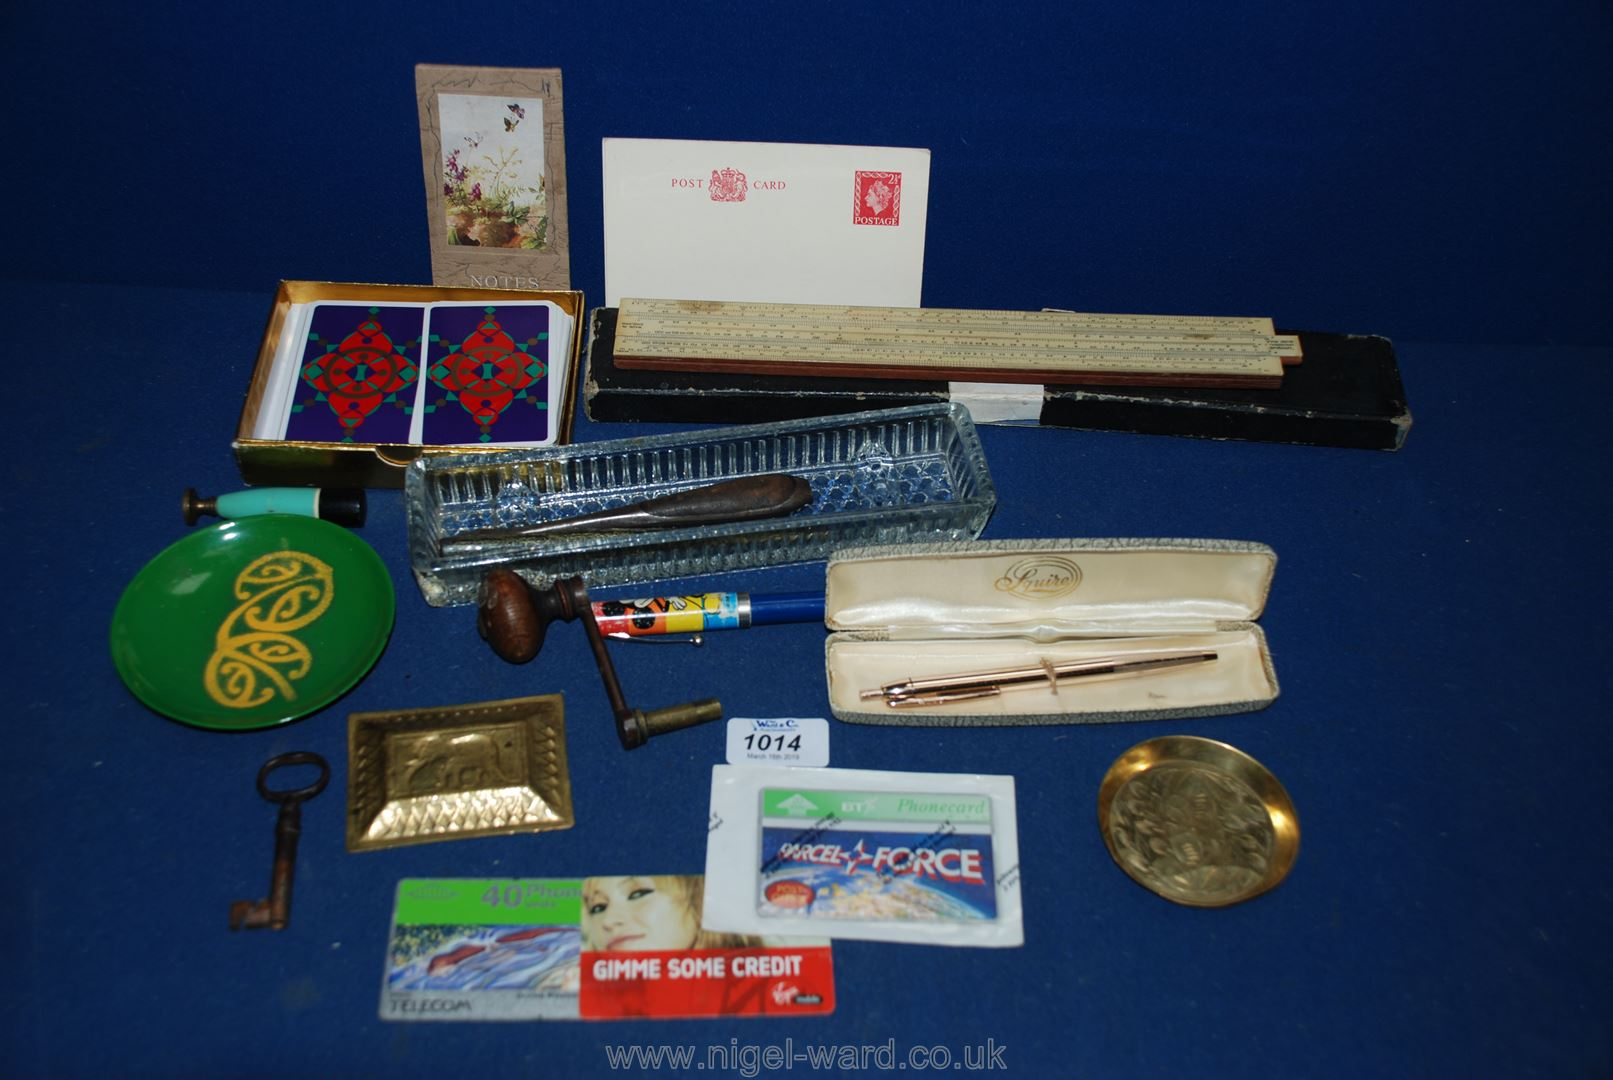 Lot 1014 - A box including clock winder, pen tray, slide rule, etc.